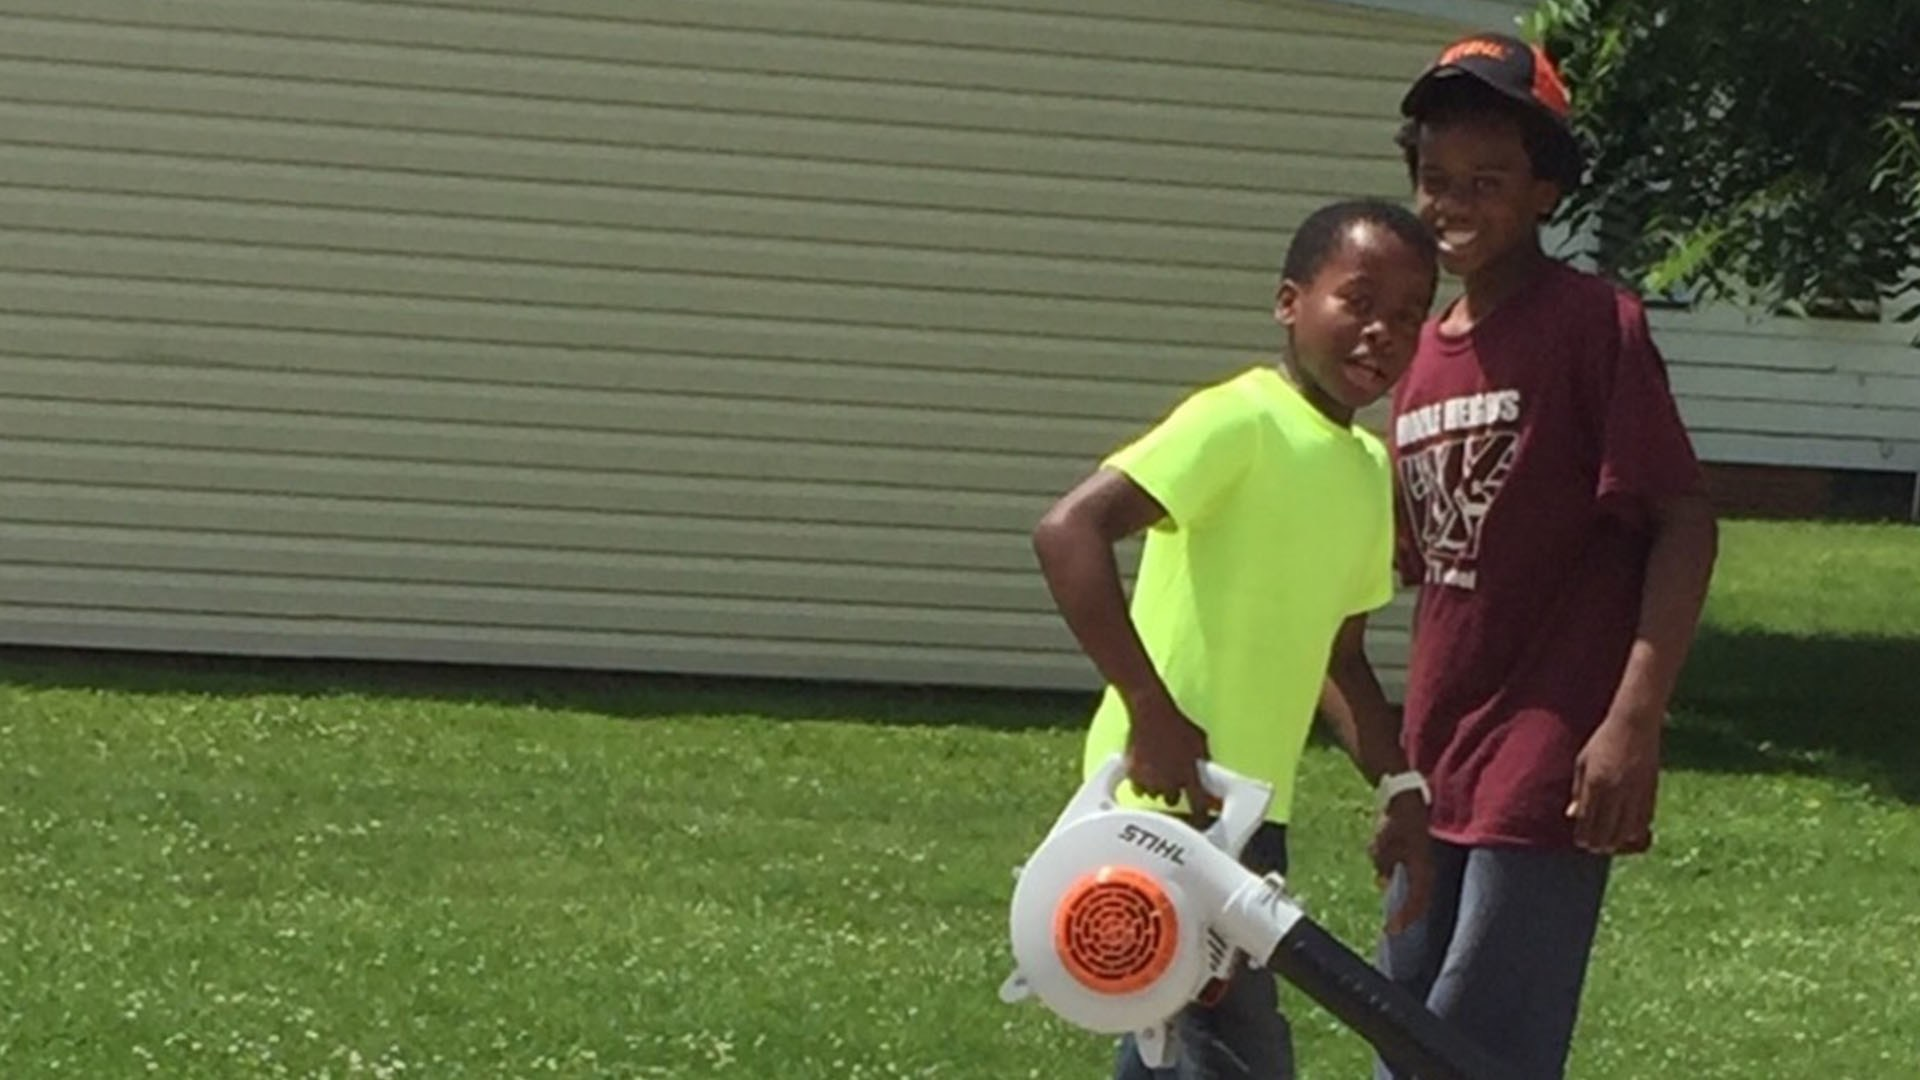 Reggie Fields, 12, had cops called on him while mowing a neighbor's